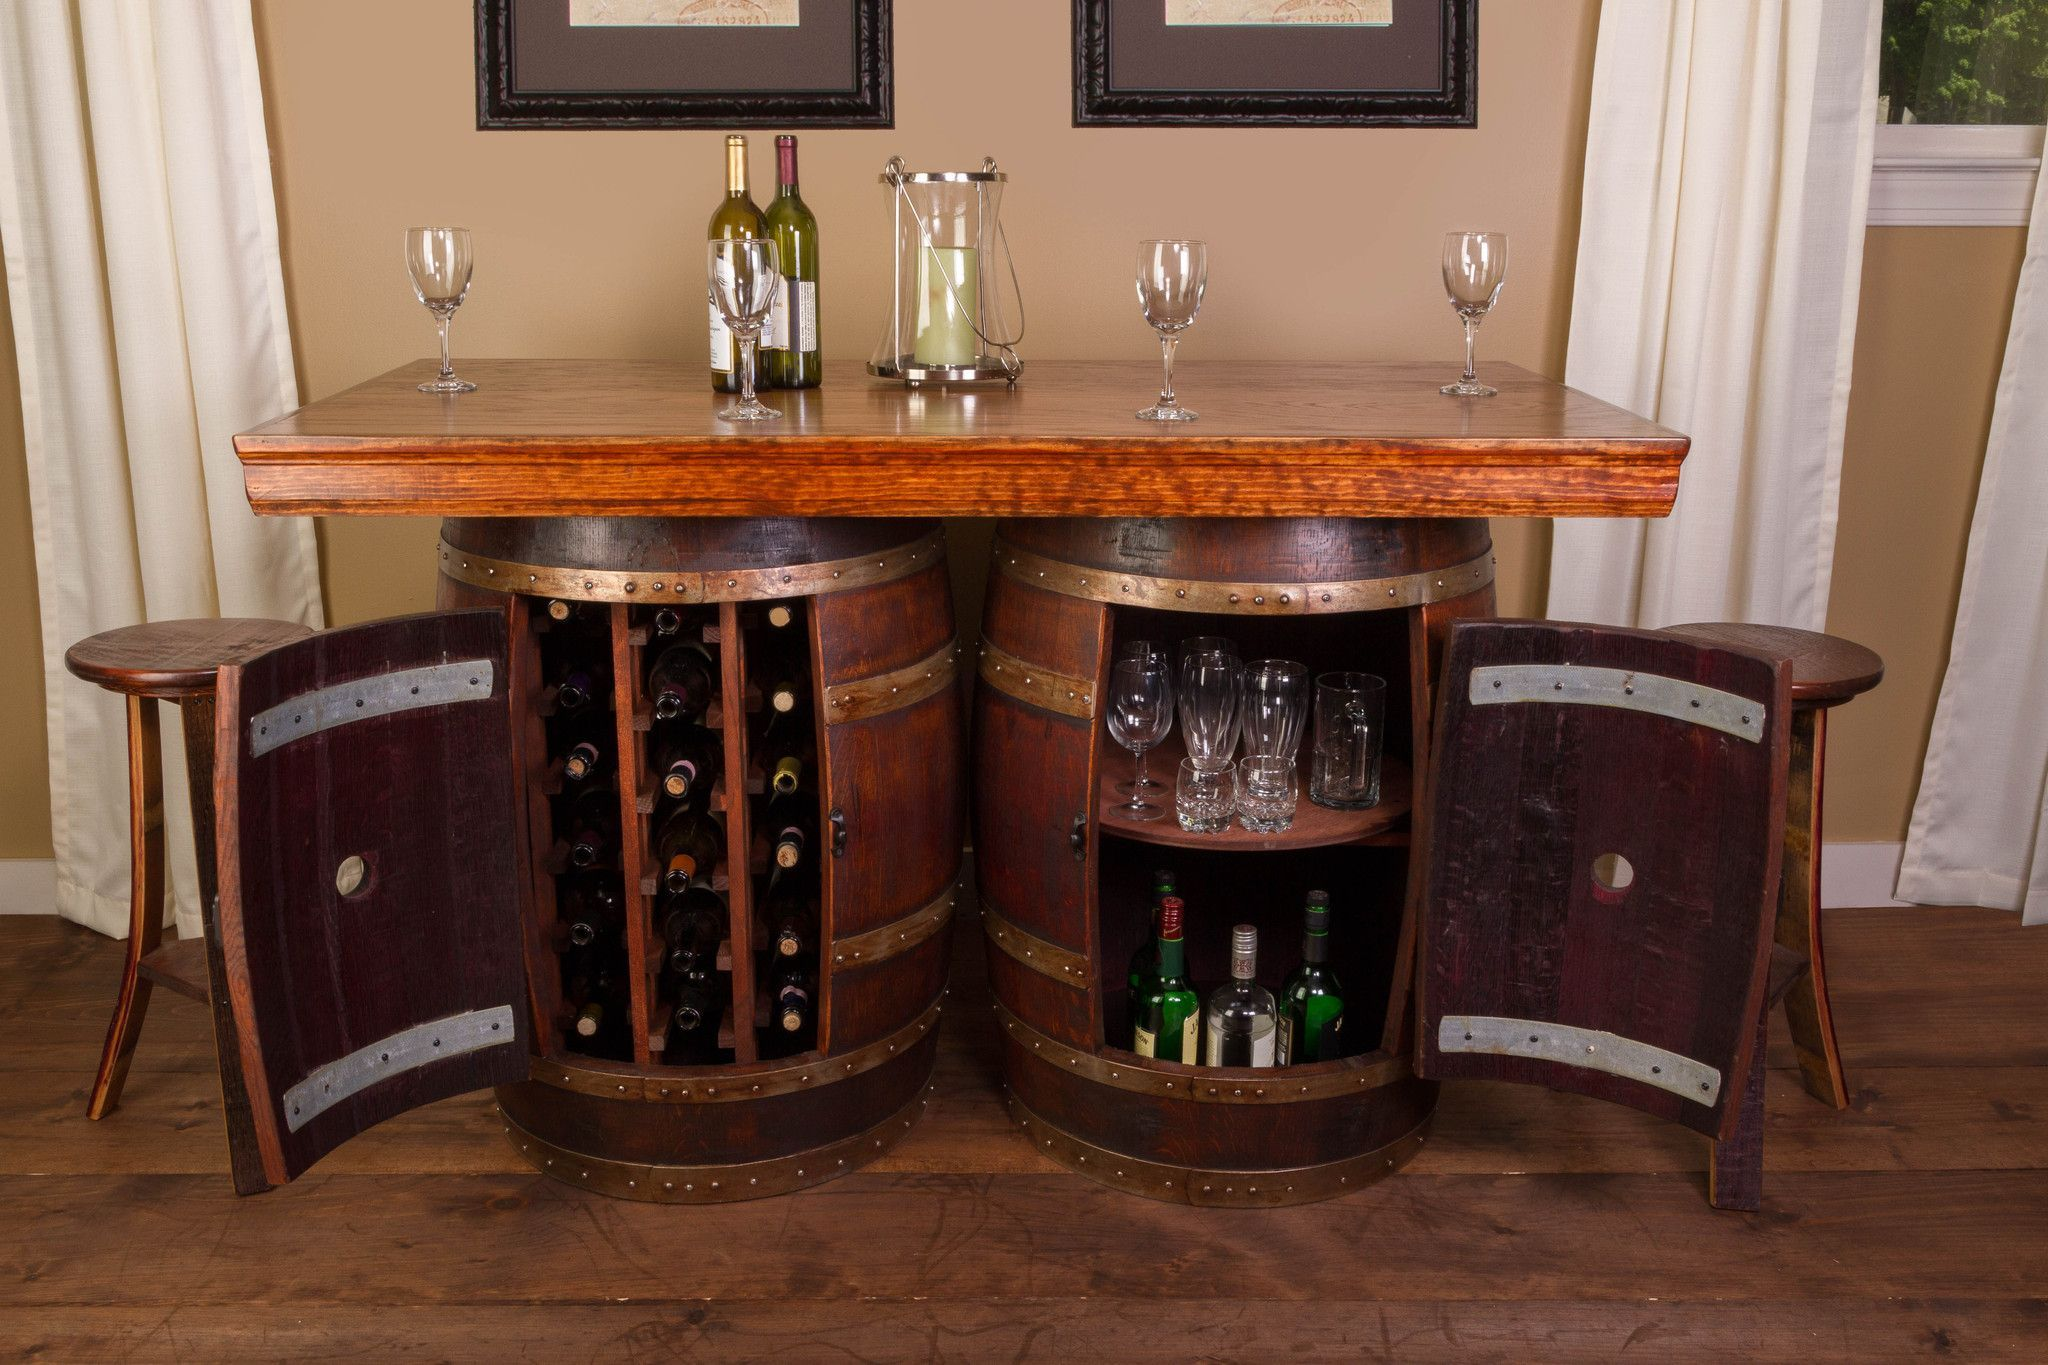 Wine Barrel Bar/Island Set with 4 Stools | Einrichtung